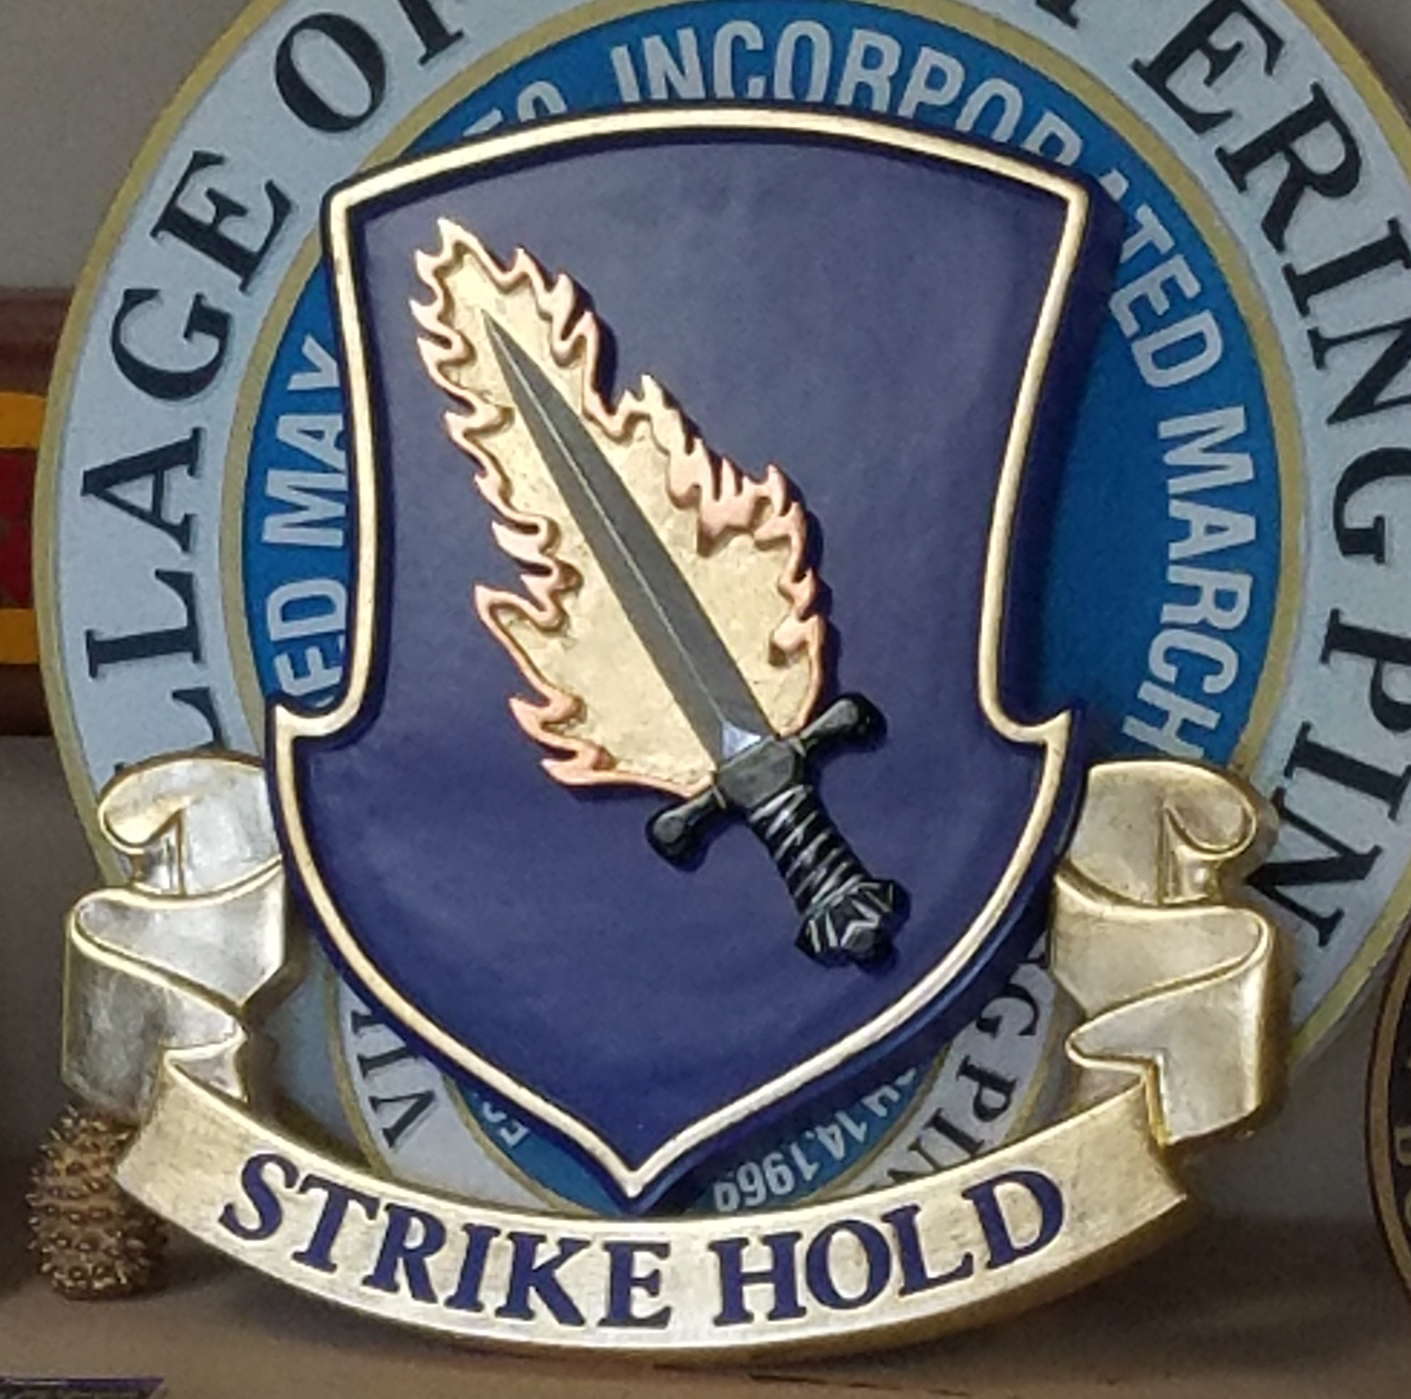 making strike hold insignia 21a classic signs nc